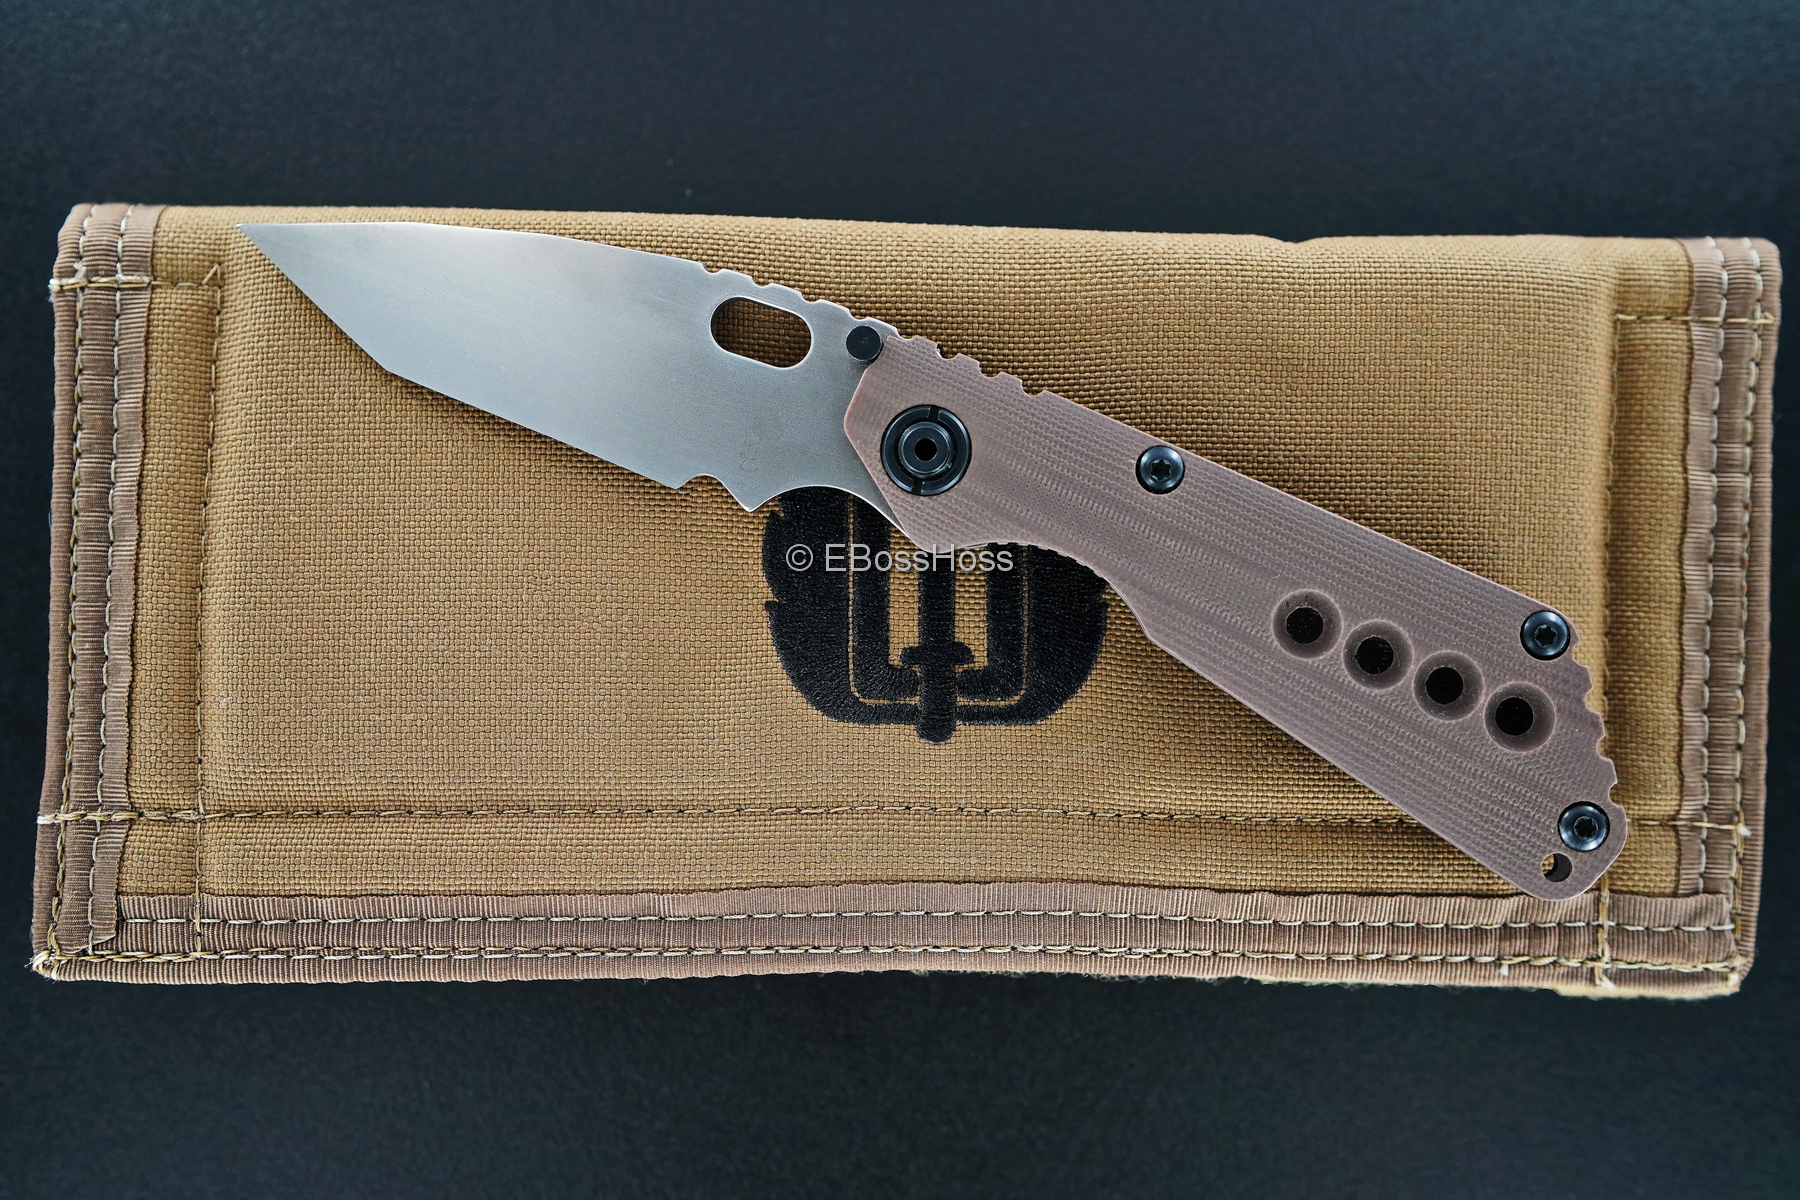 Duane Dwyer Custom (DDC) SnG